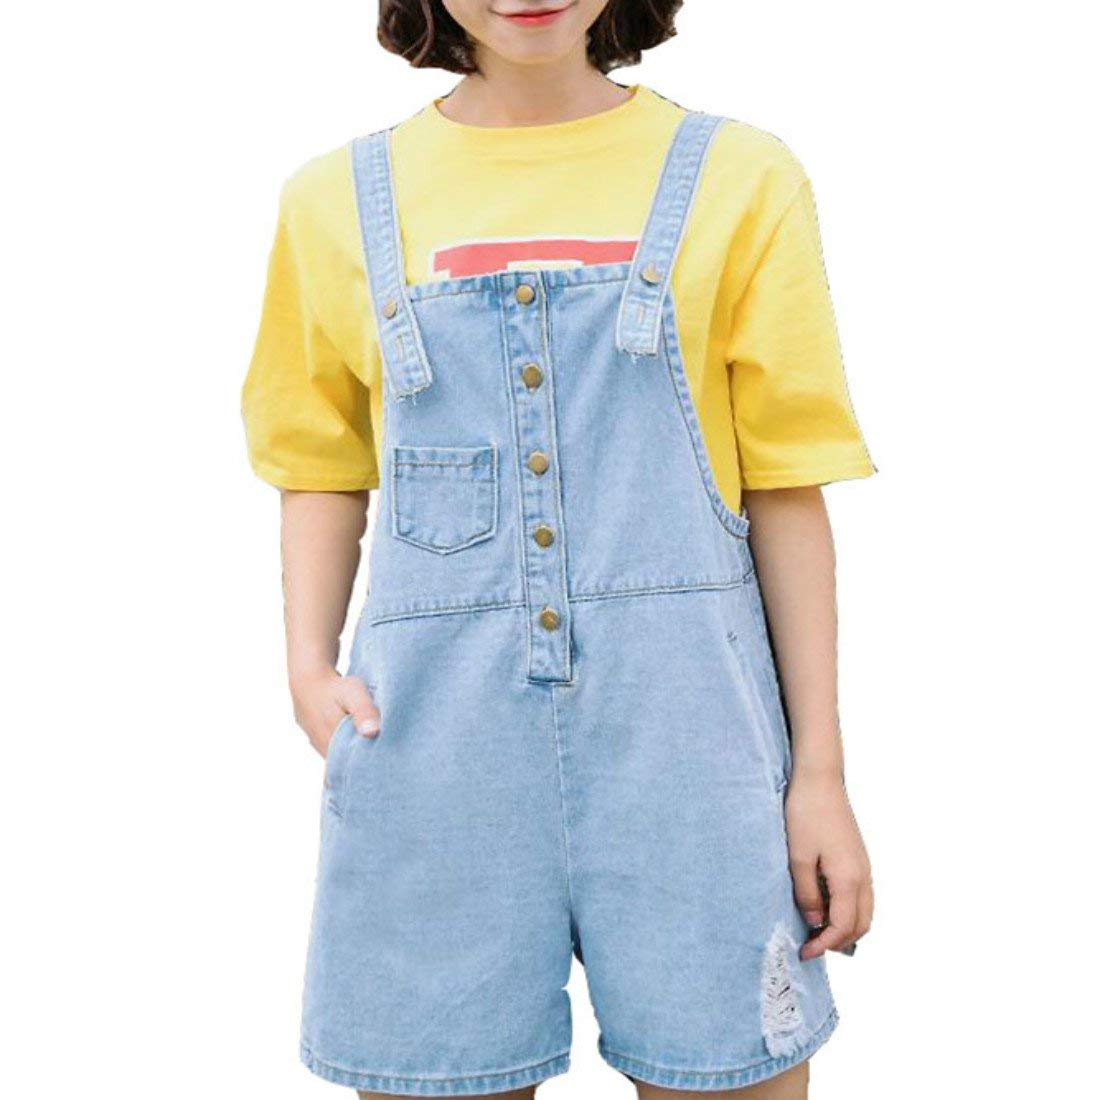 0652b4065d79 Get Quotations · Colygamala Girl s Cute Wash Jumper Romper Denim Overall  Shorts-Summe Shorts Jeans White Black